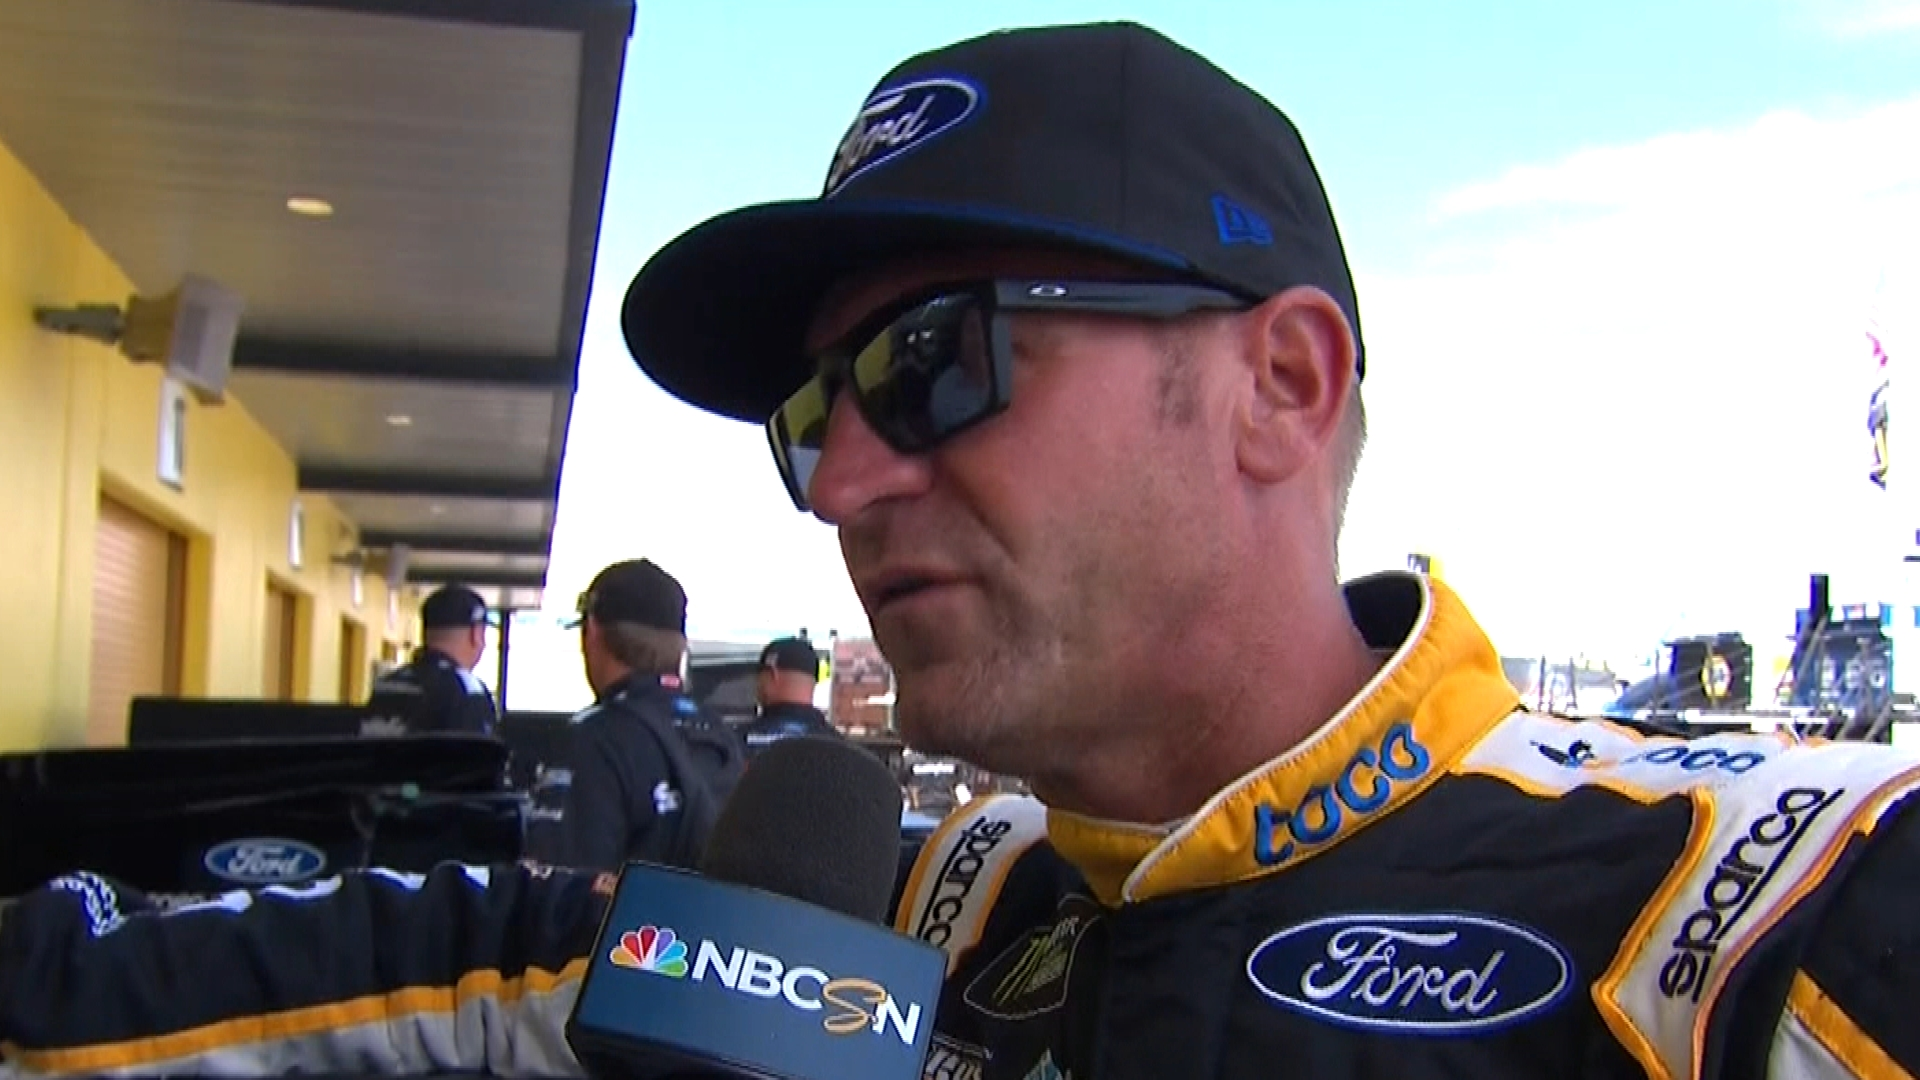 Clint Bowyer achieves third career pole in Monster Energy NASCAR